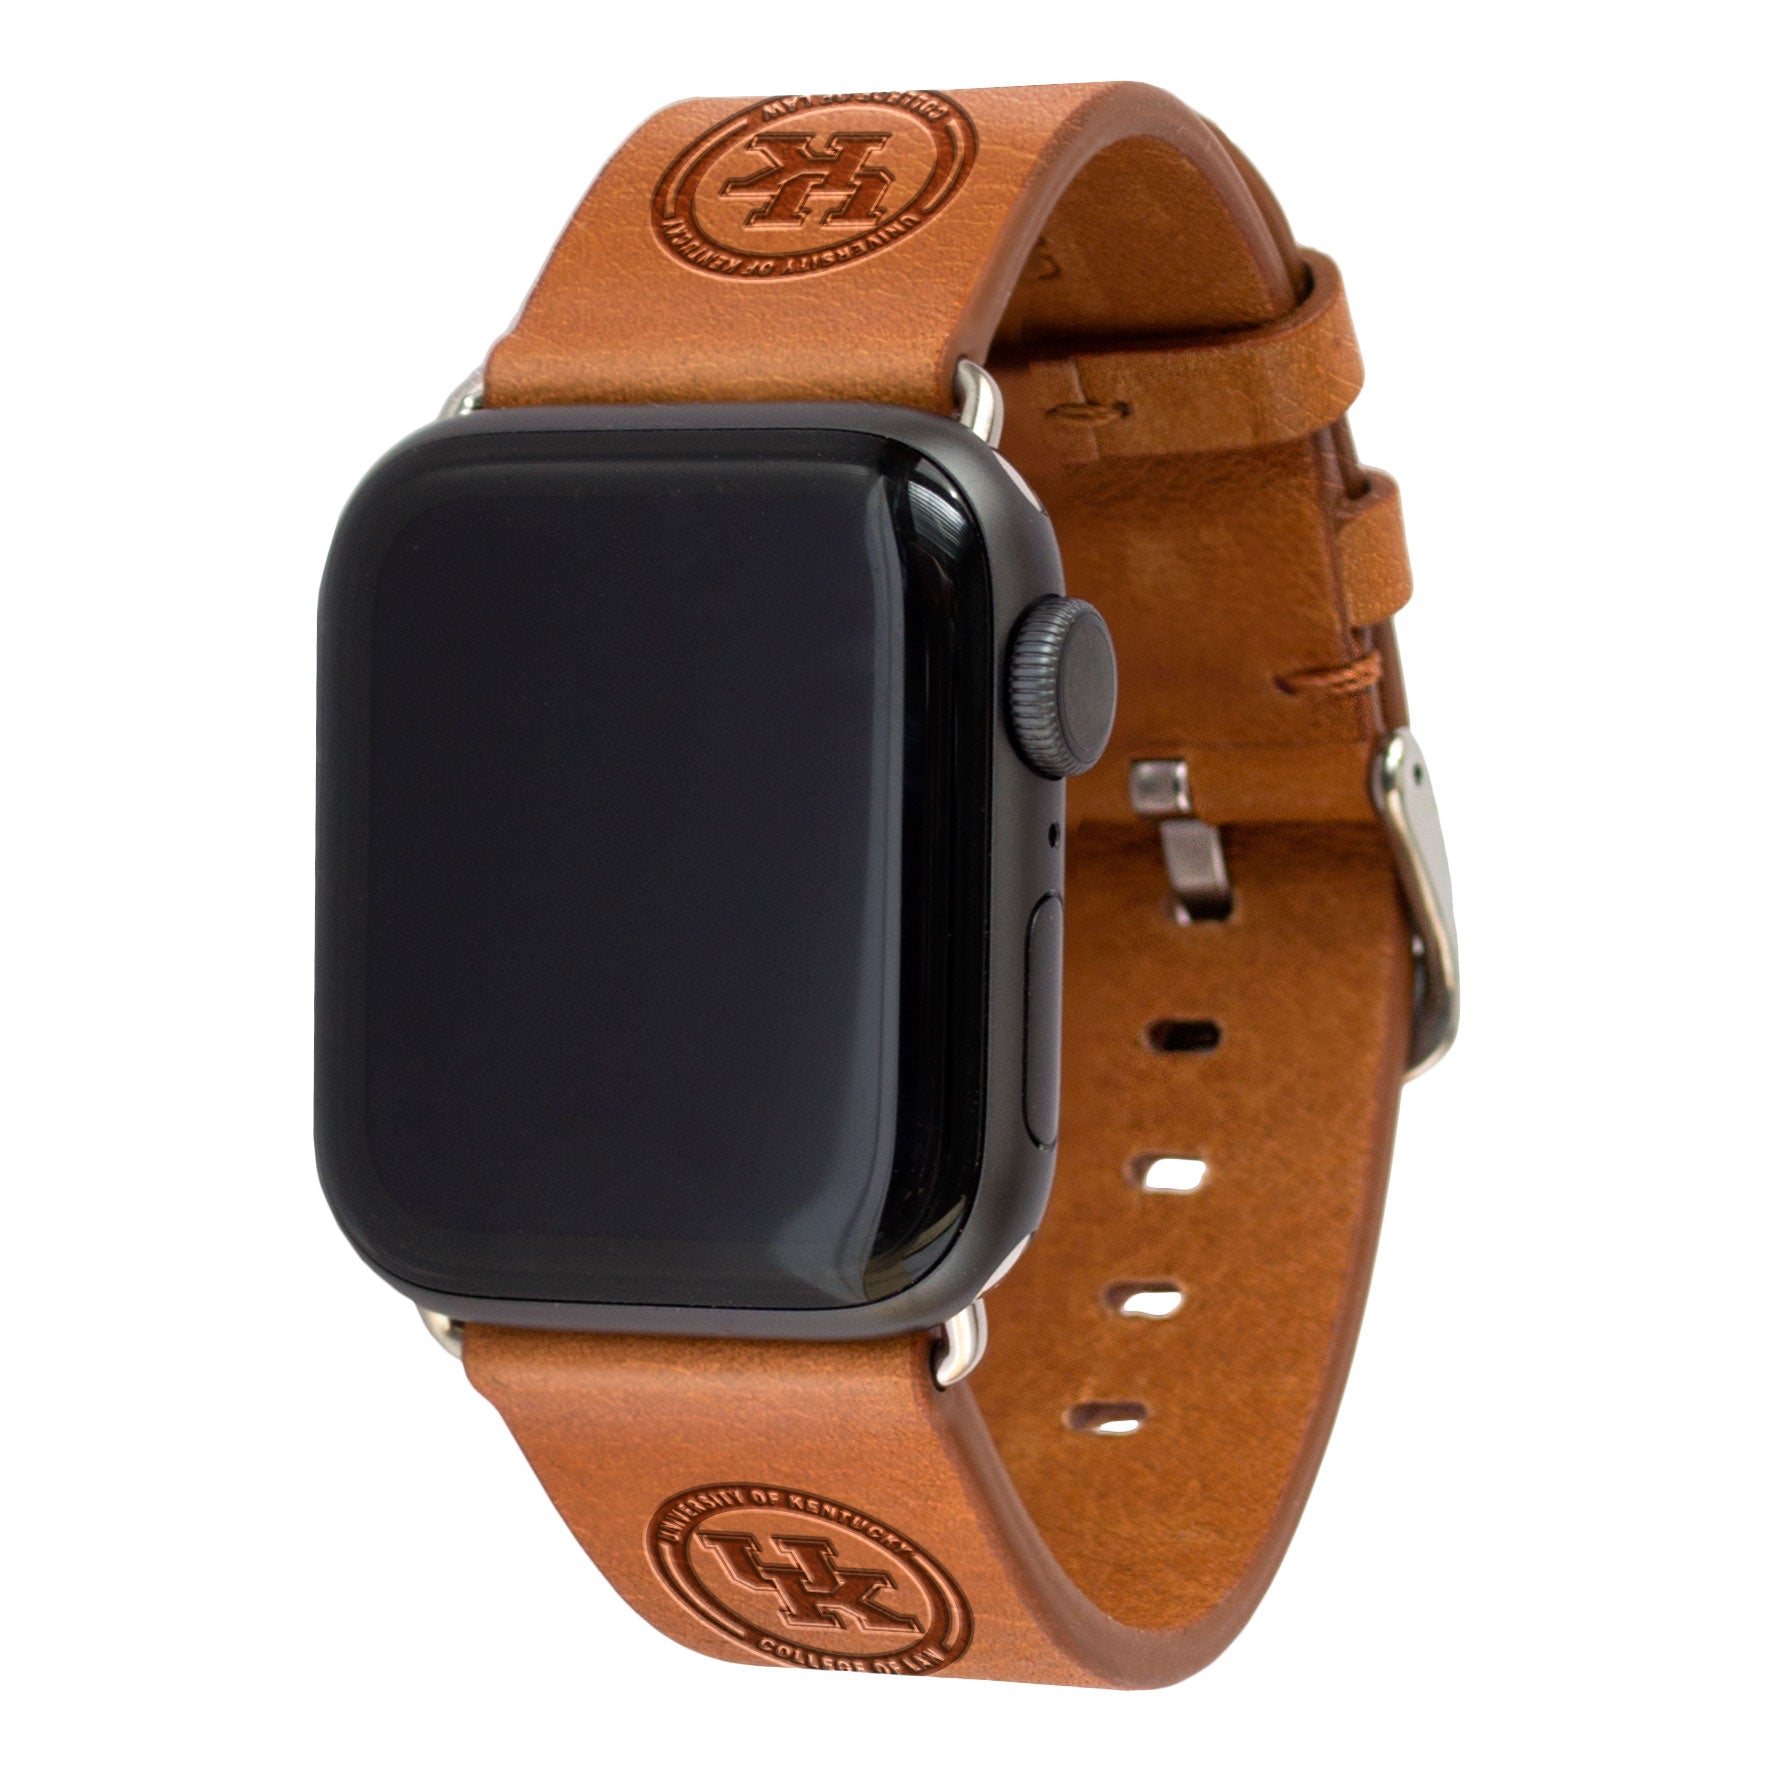 UK College of Law Leather Apple Watch Band - AffinityBands